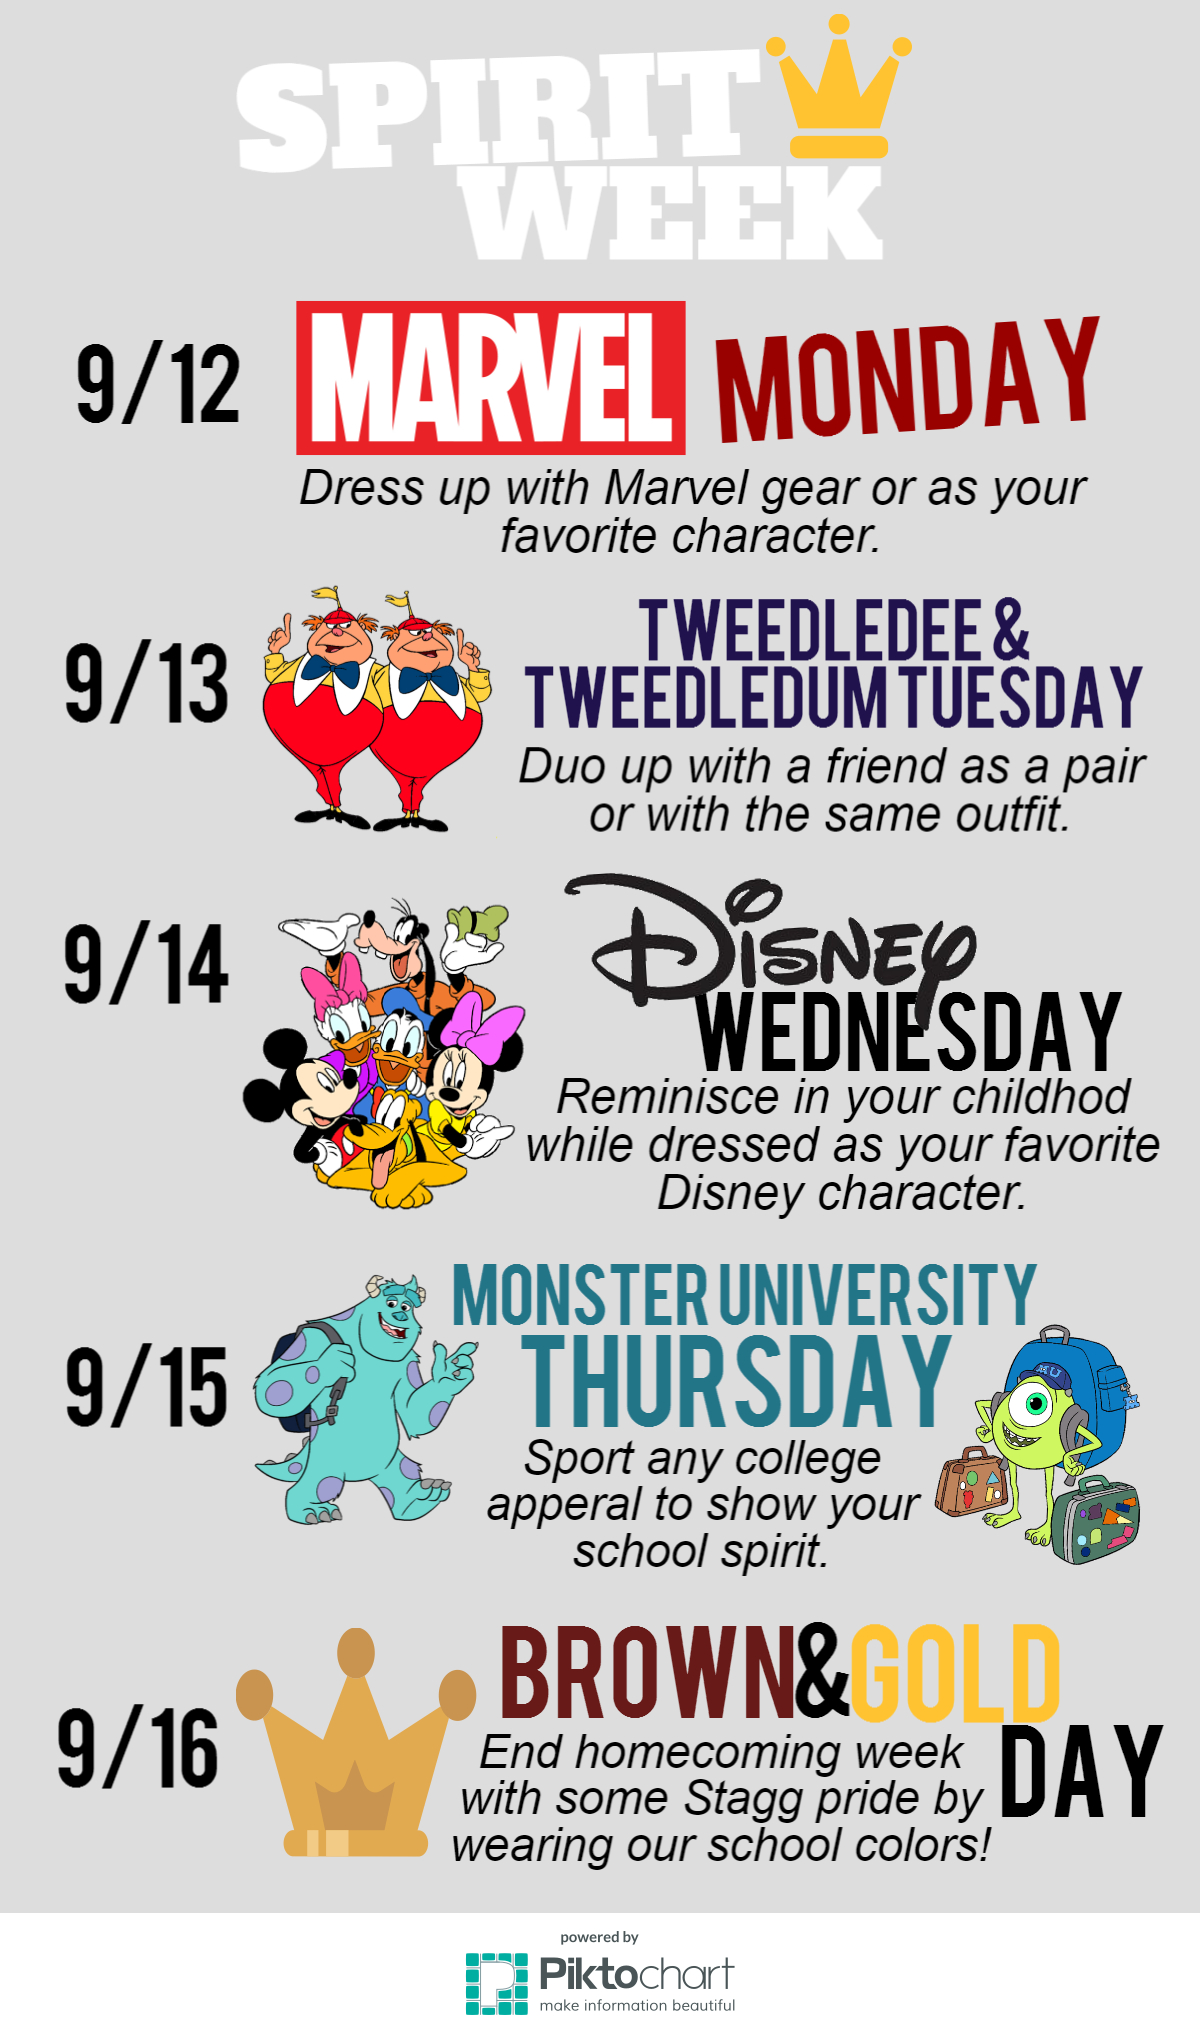 10 Spectacular High School Homecoming Week Ideas spirit week sep 15962586 fcc8d9116bf7906cca089a84c86d4200110ce9ec